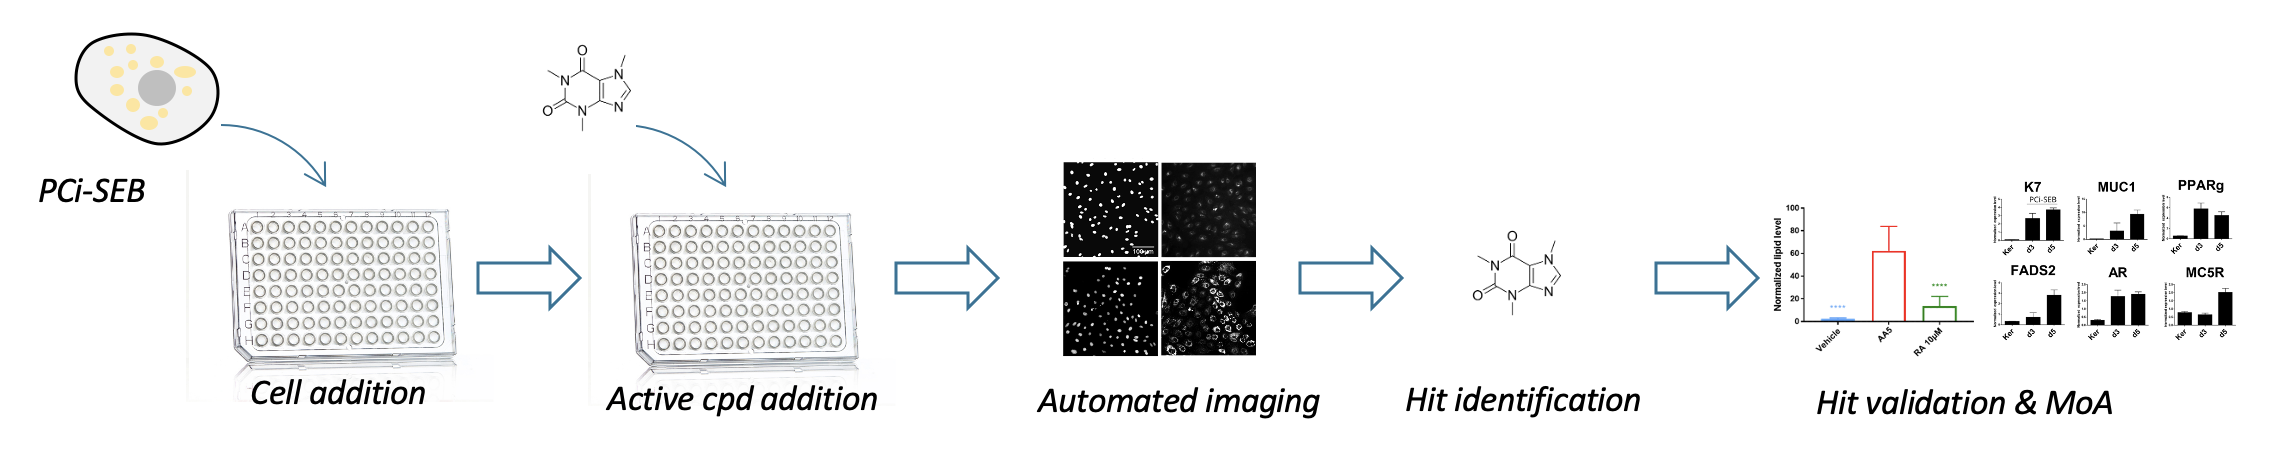 Pattern of the high-throughput Imaging for sebocyte screening first compound addition in the 96 well plate, then automated imaging to identificate activity and last valide the mechanism of action